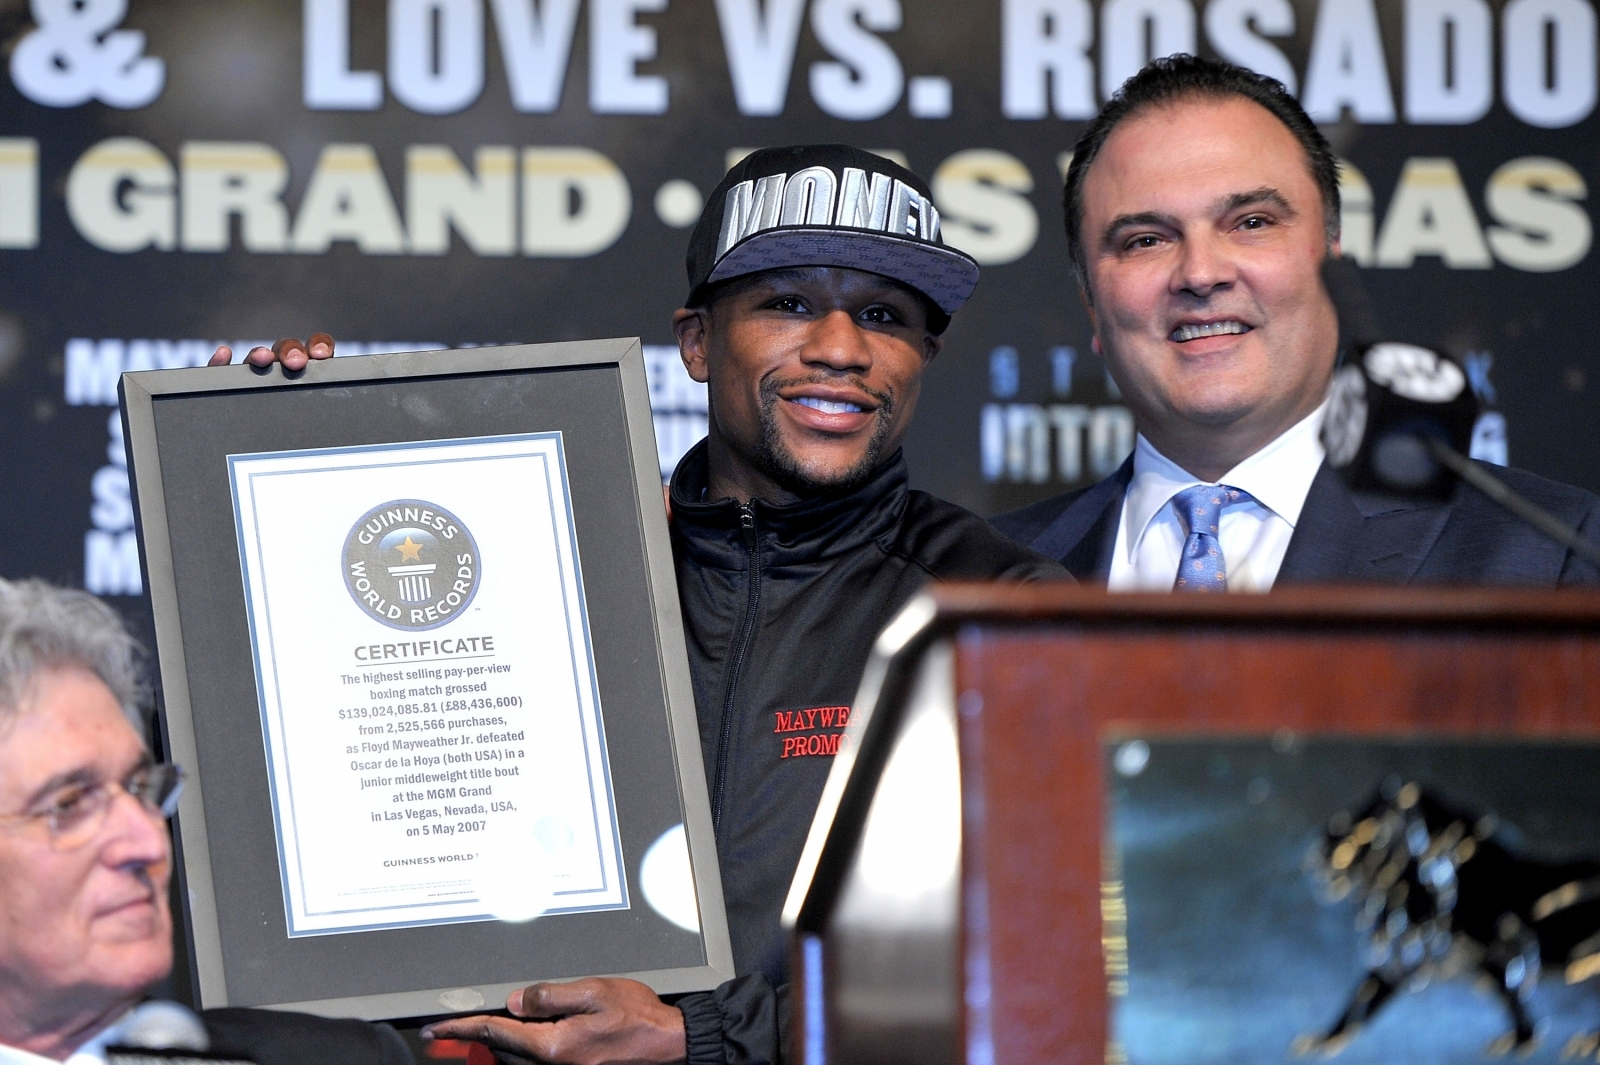 Floyd Mayweather and Richard Schaefer